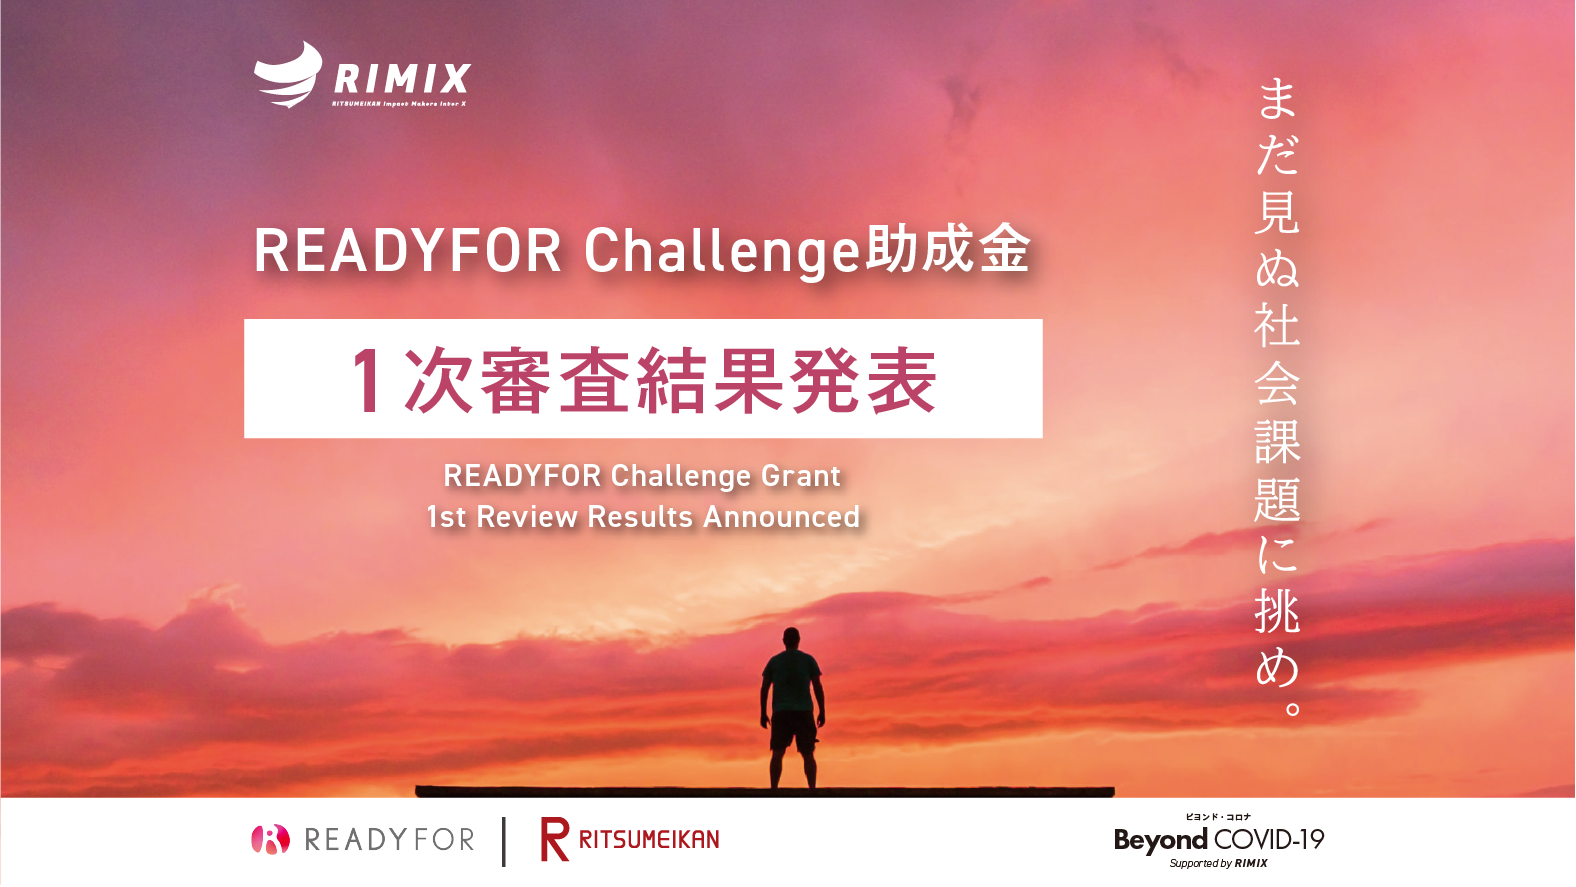 READYFOR Challenge助成金・1次審査結果について – First Review Results Announced